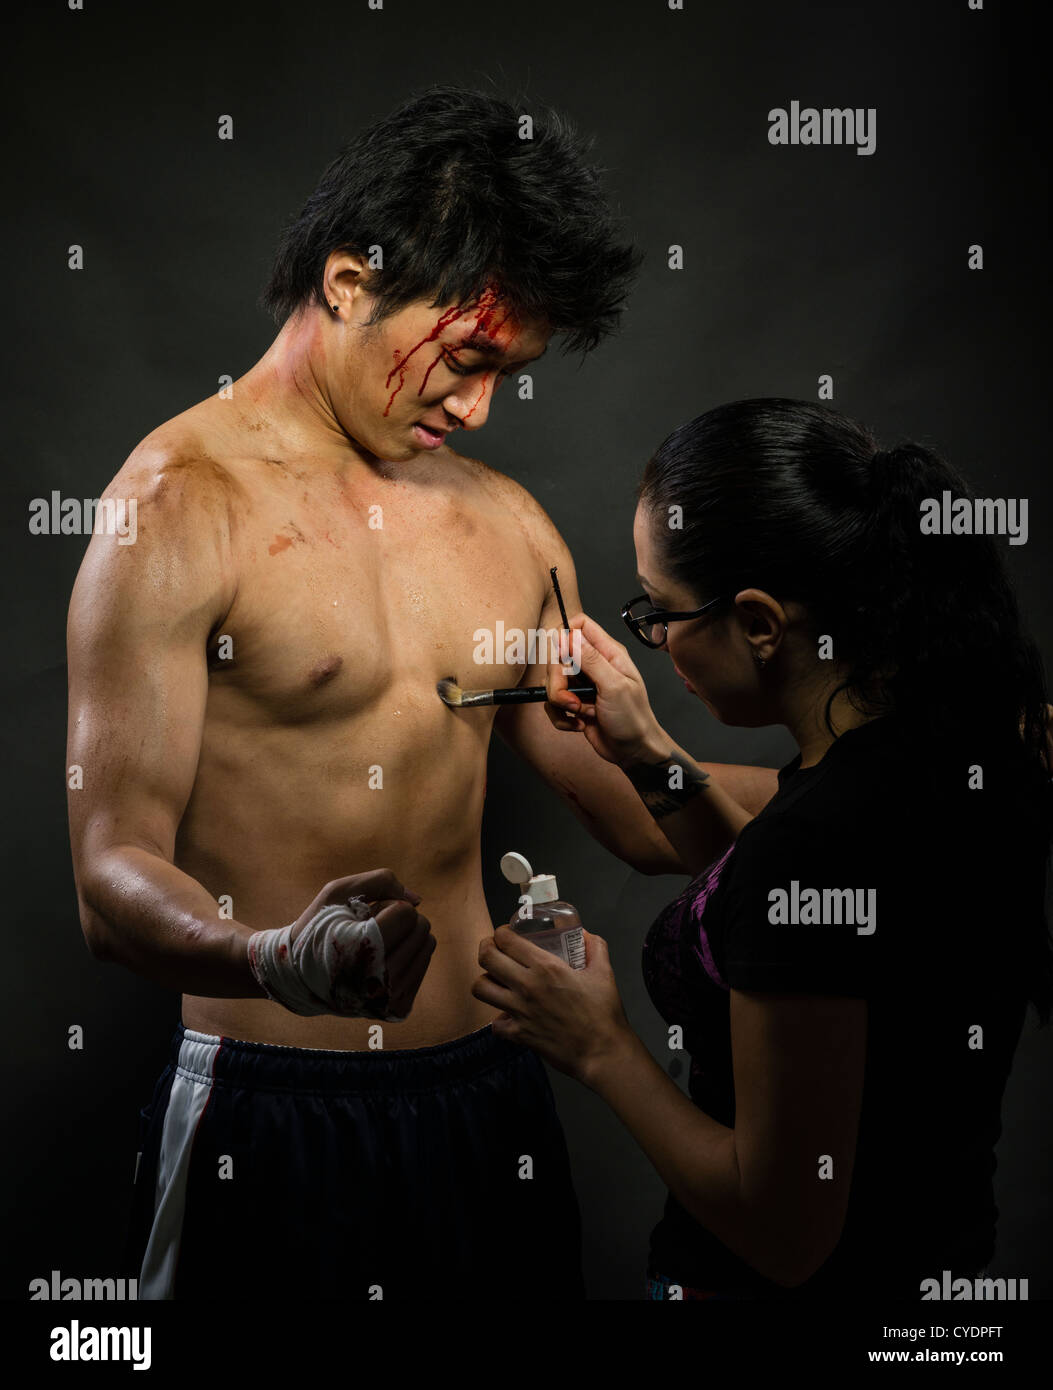 Makeup / special effects artist applies dirt and blood to the body of a model / actor - Stock Image